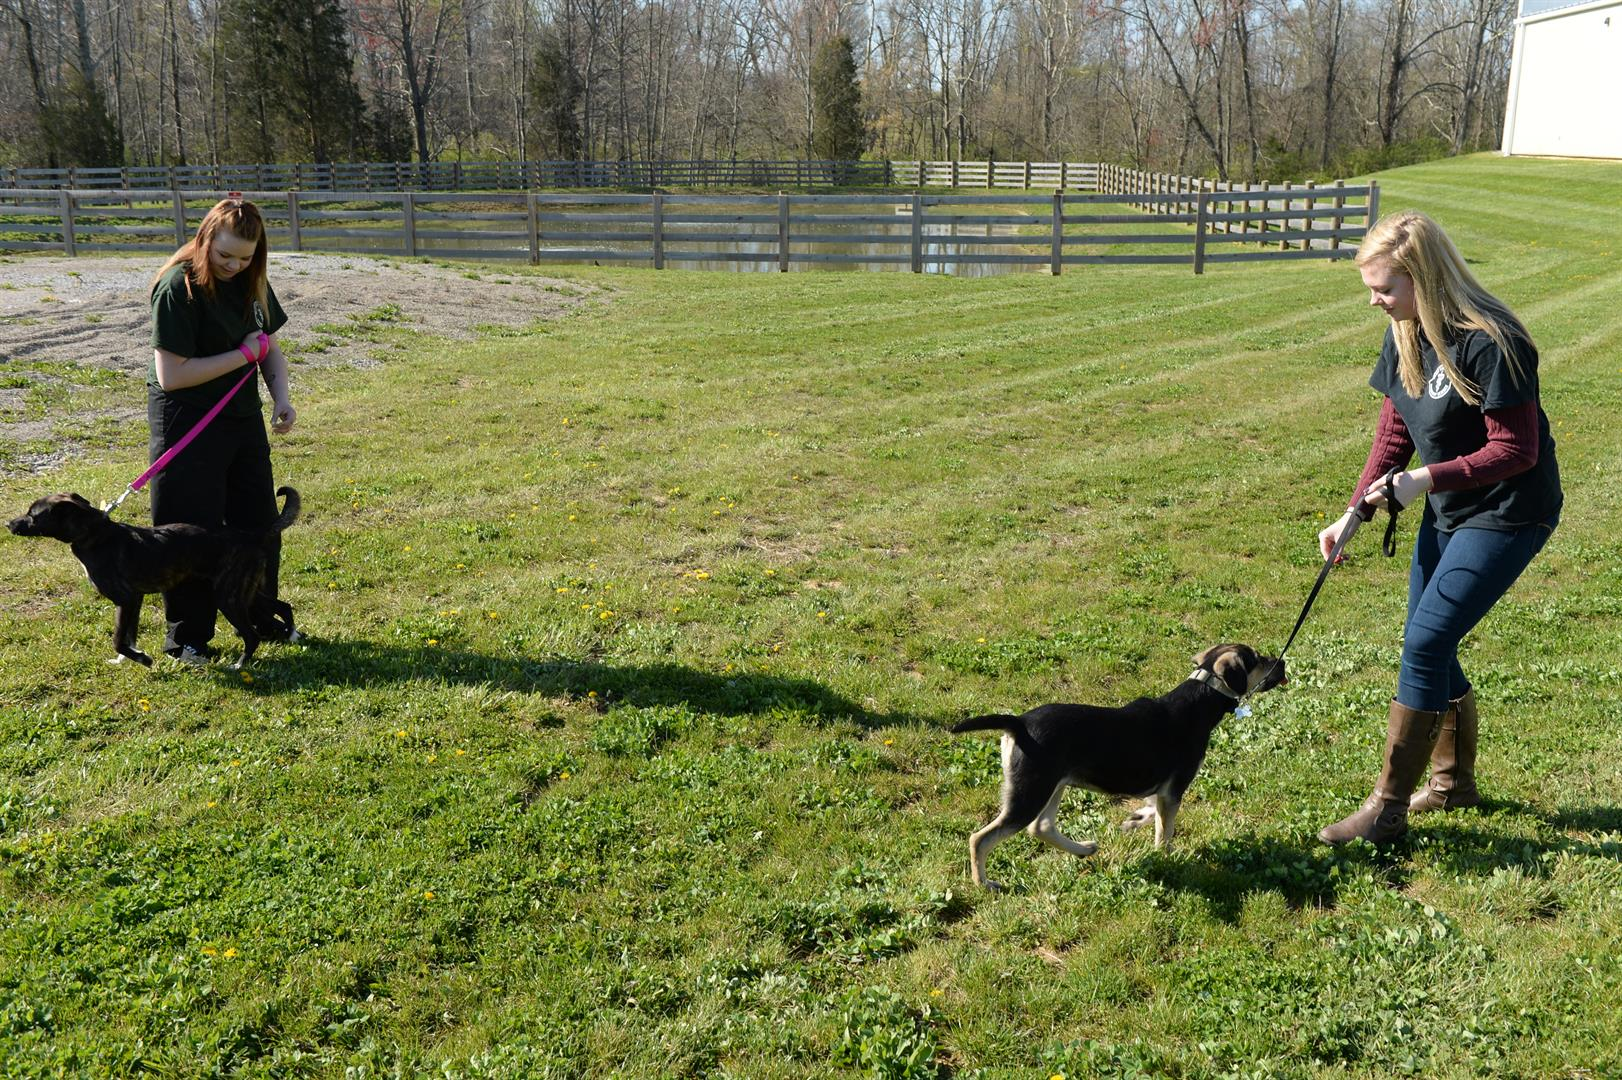 Students walk dogs in a field of grass.